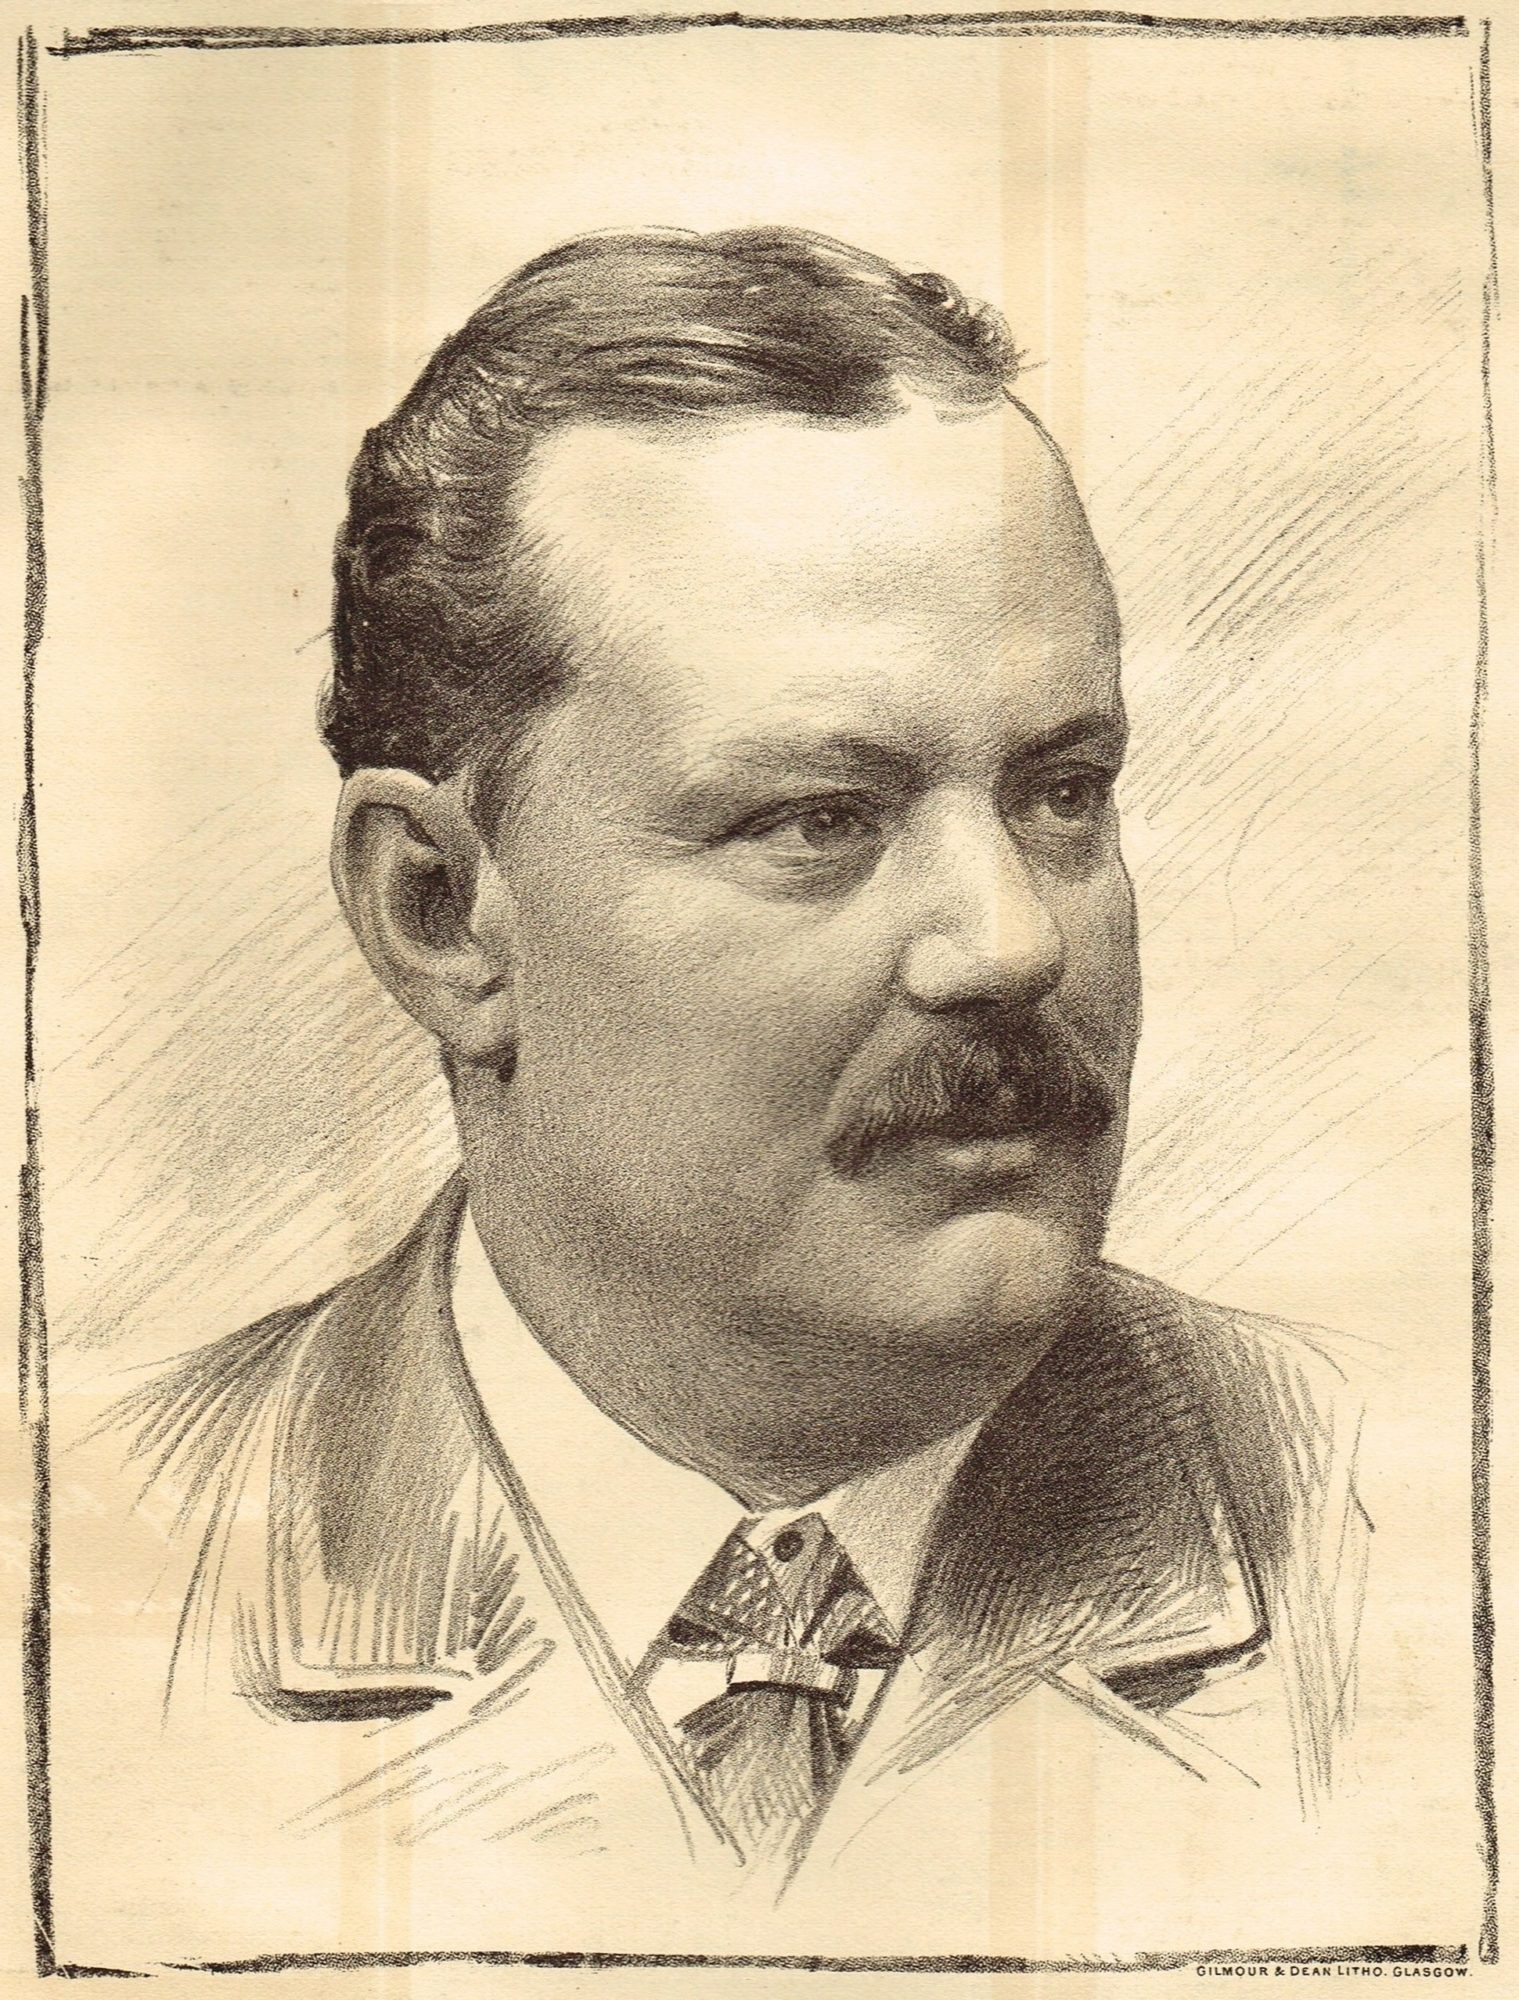 Lithograph of Charles Cayzer 1896